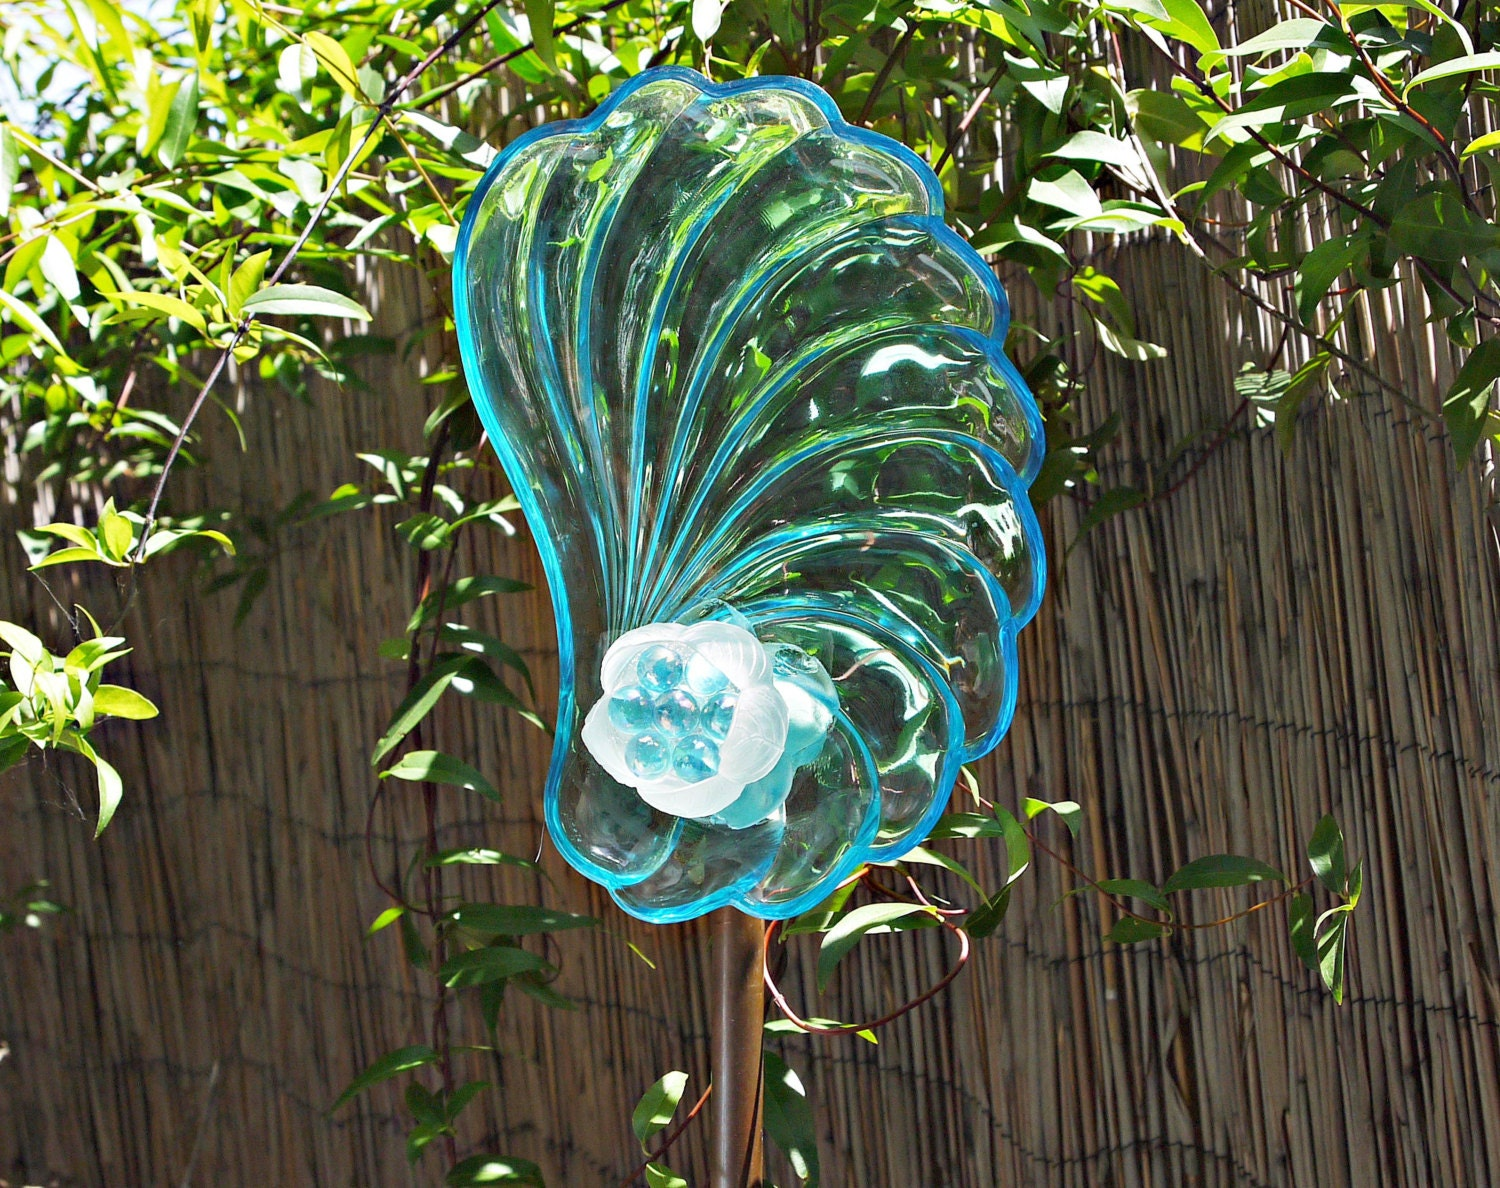 gl vase yard art with Turquoise Garden Flower Yard Art Glass on Garden decor together with Indiana Glass Blue Carnival Glass Hen On furthermore Hand Painted Recycled Beer Bottle together with Yellow And Blue Art Glass Garden Totem furthermore Garden Art Glass Angel Glass Angel Angel.